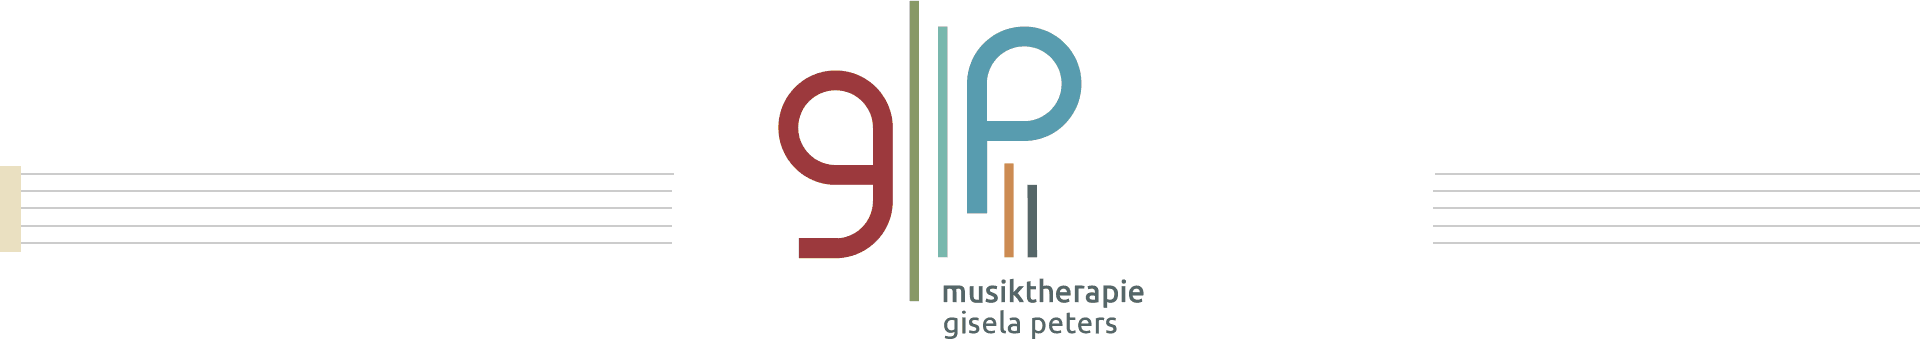 Musiktherapie - Hamburg Winterhude - Gisela Peters